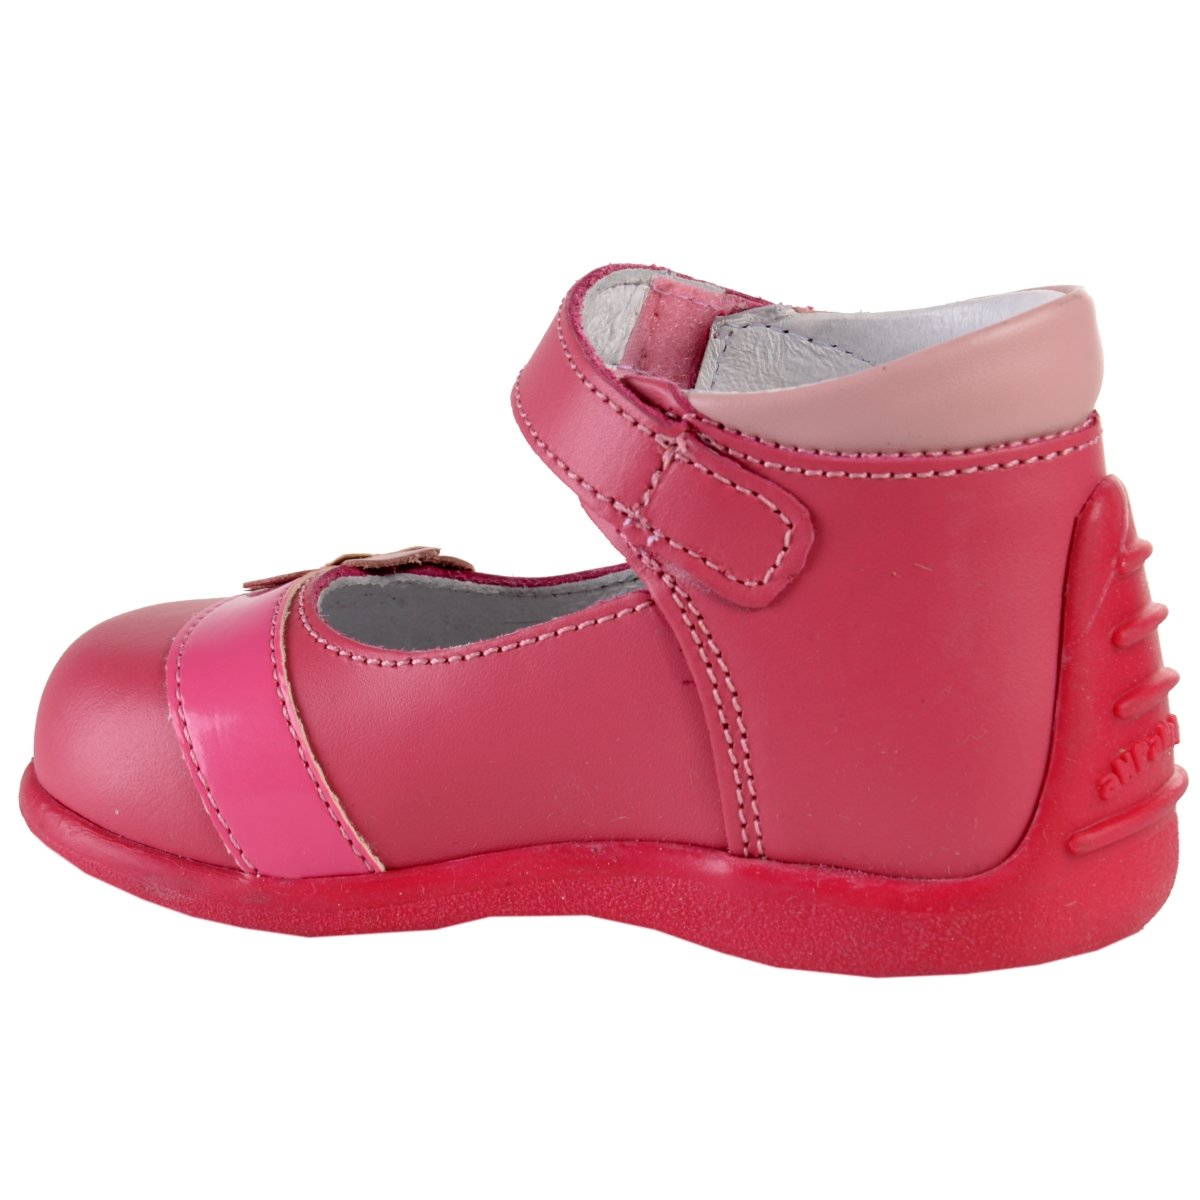 Zapato mary jane flor 12 15 mod 5332e63 sears com mx for Servicio tecnico jane